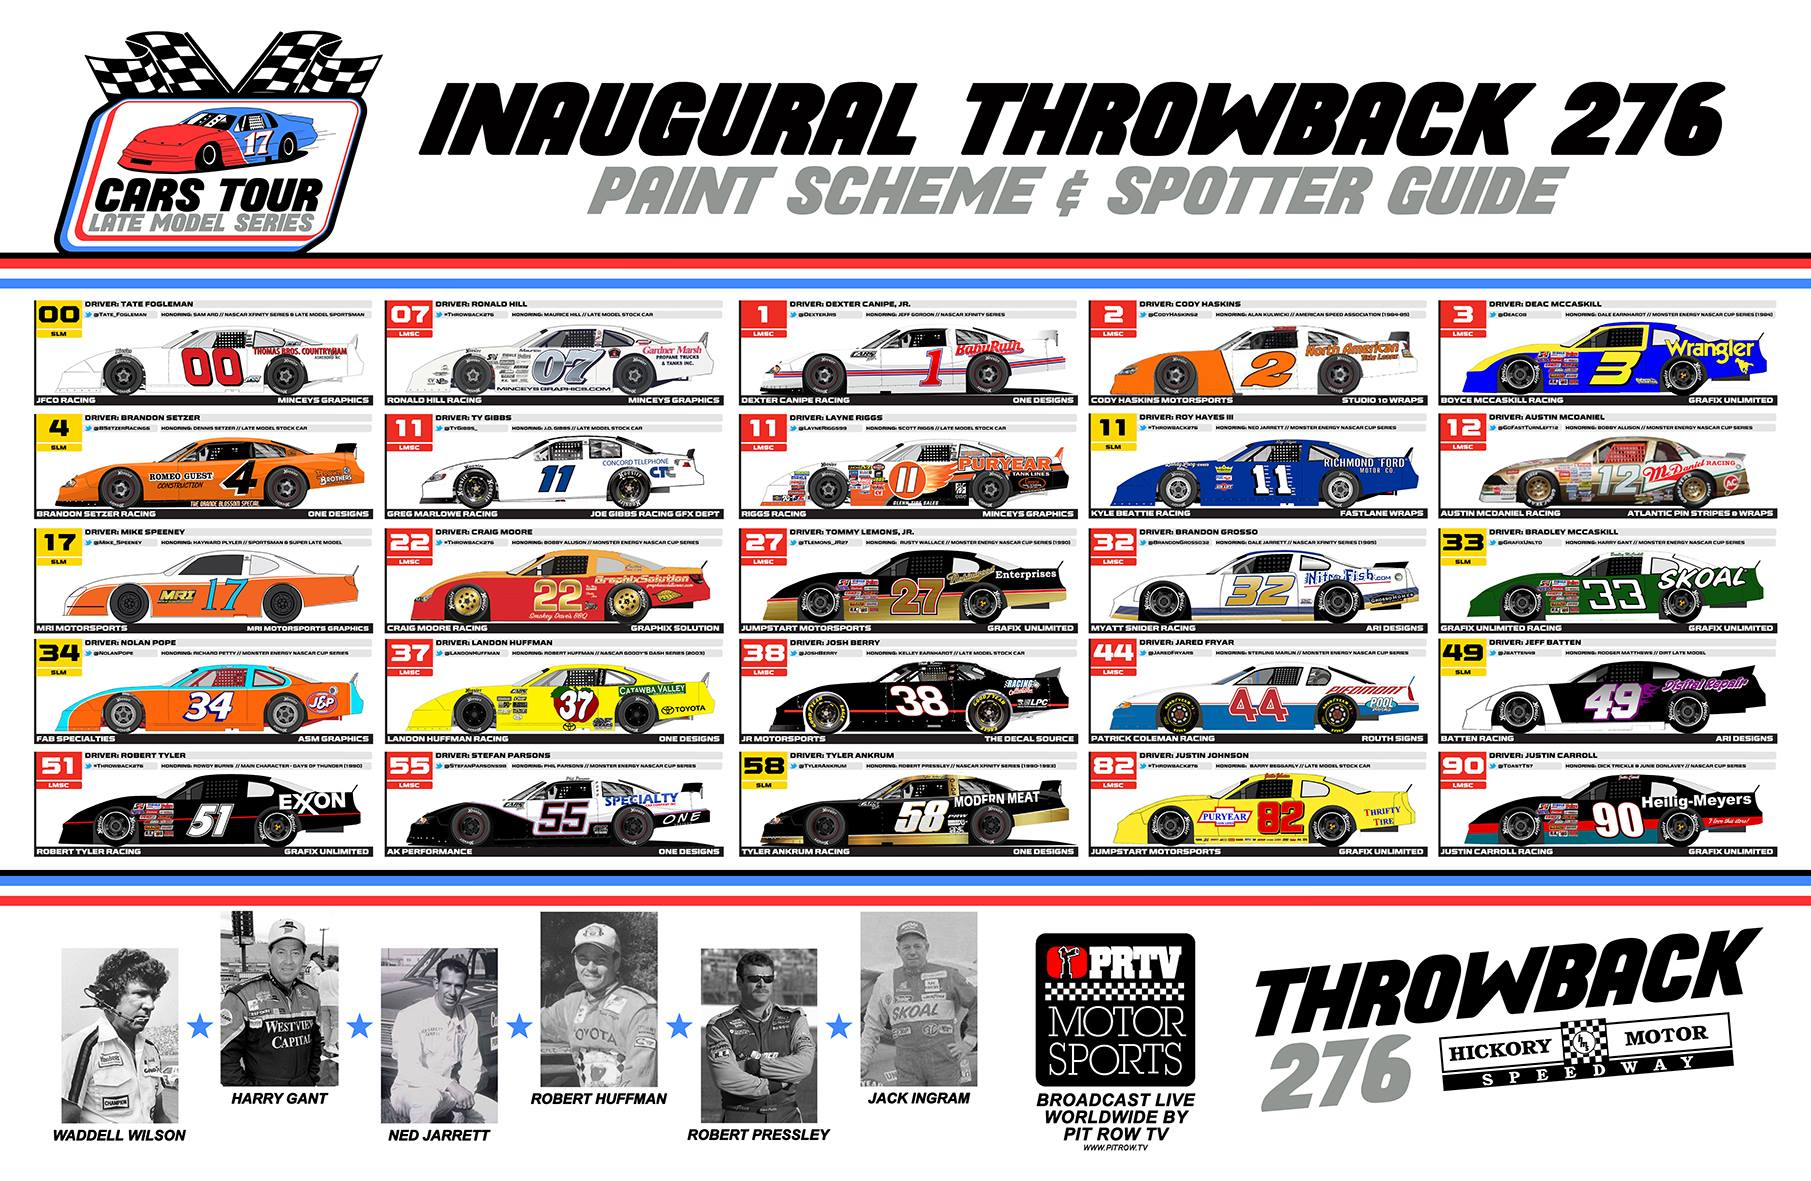 2017 Hickory Motor Speedway Throwback 276 paint schemes